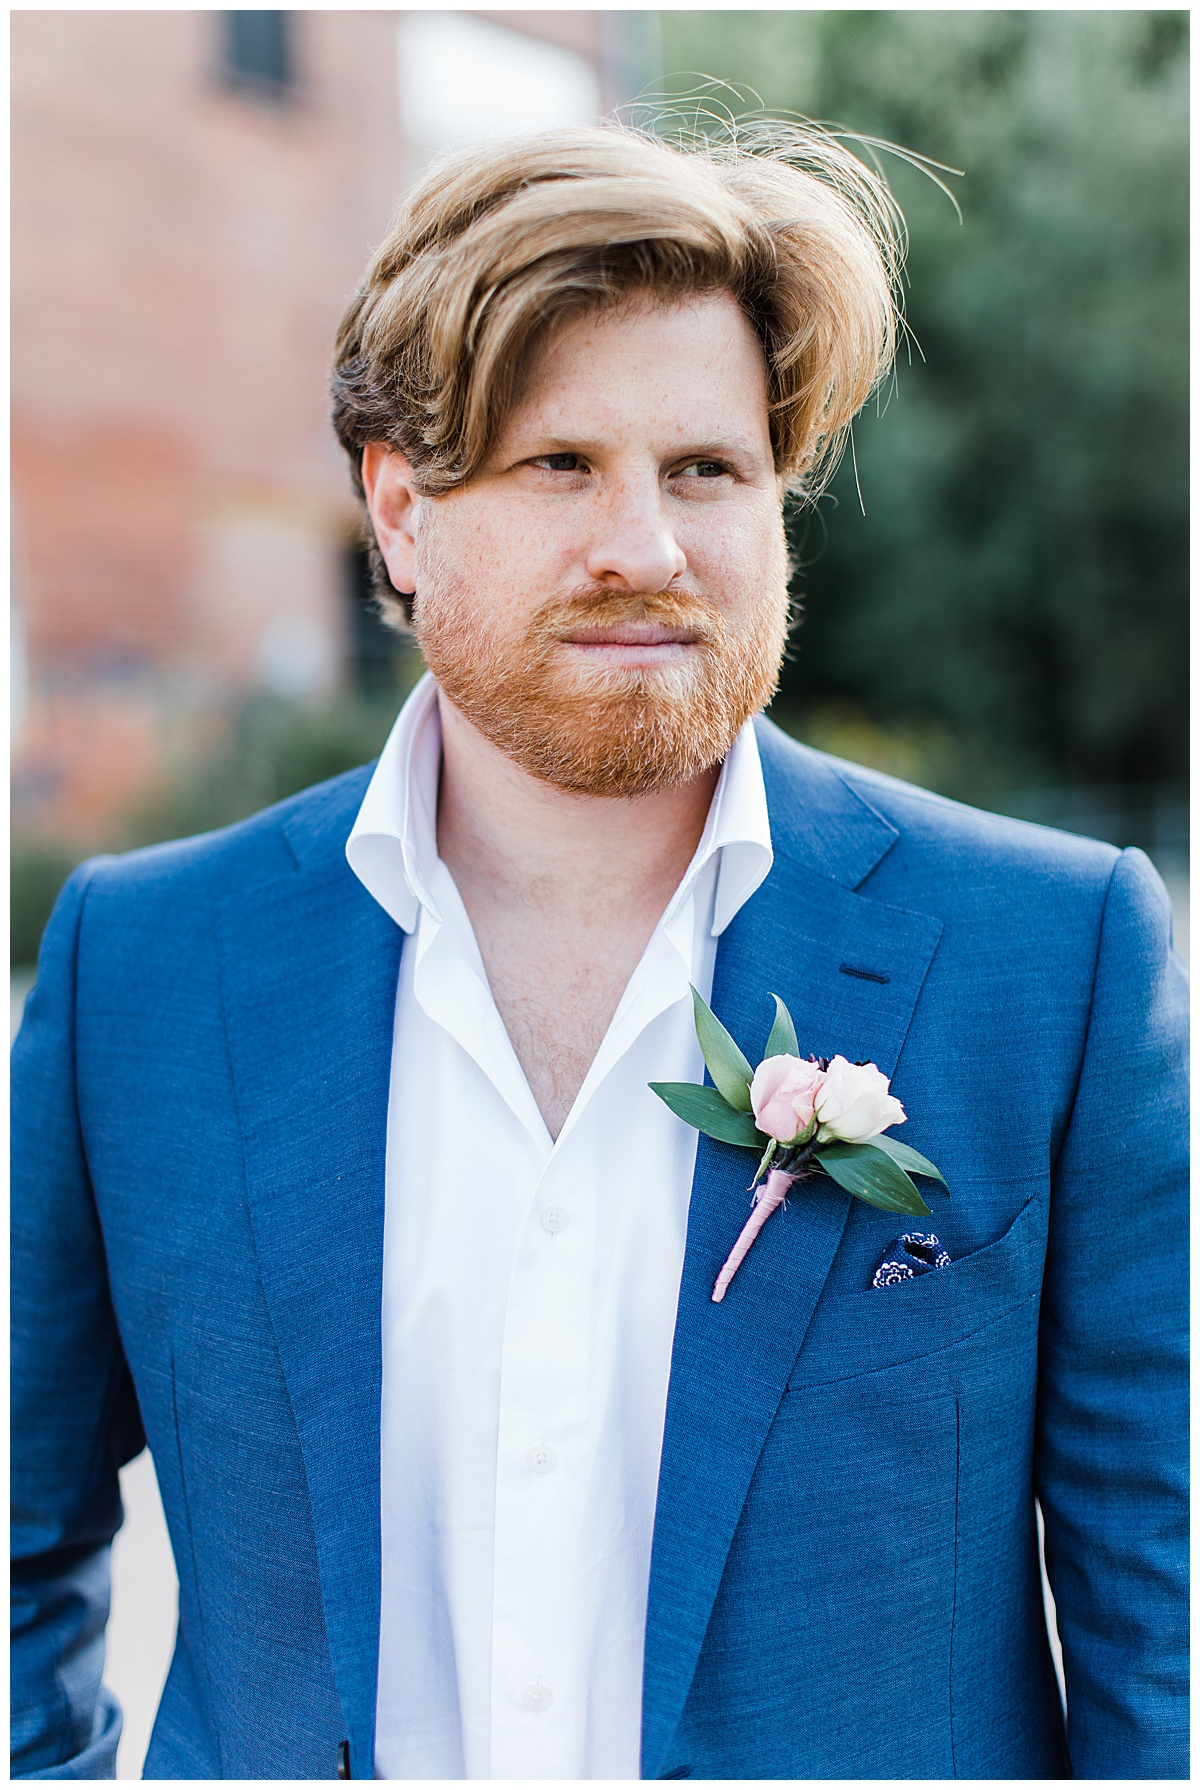 Close up groom portrait in blue and white